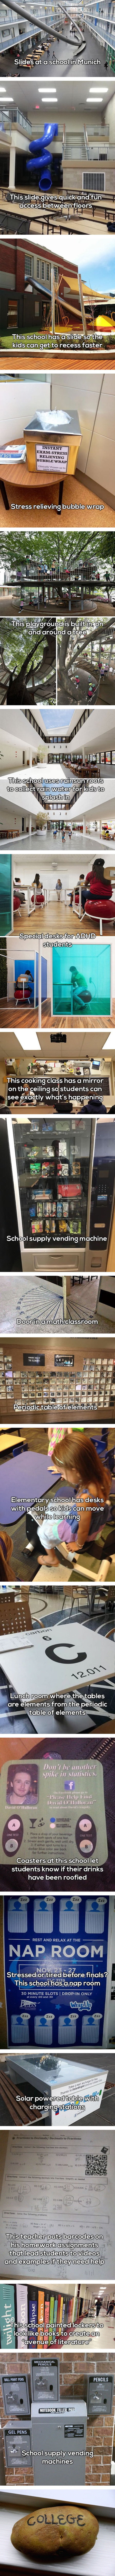 I Will Not Skip Classes If My School Got These Brilliant Inventions